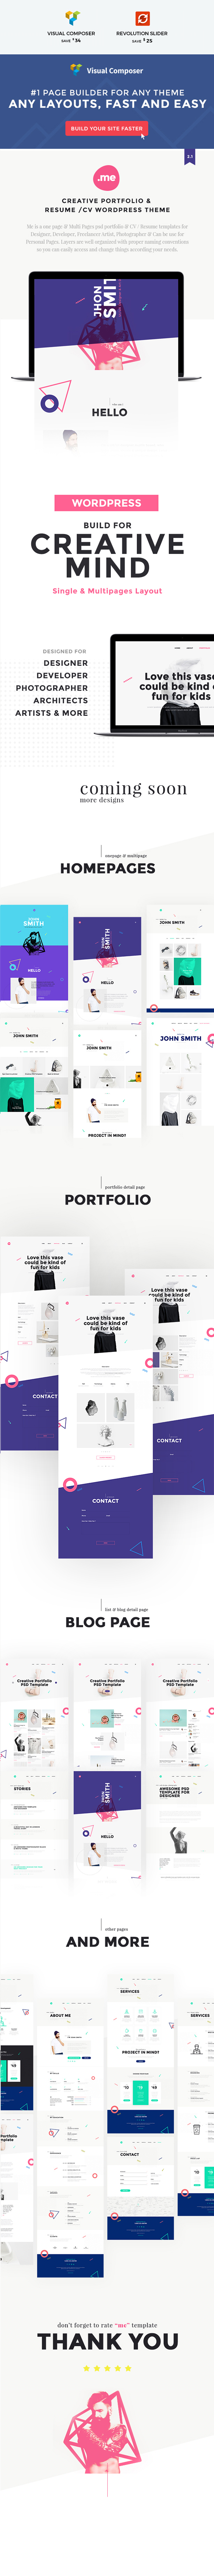 resume theme for designer developer freelancer artist photographer can be use for personal pages well organized with proper naming conventions so